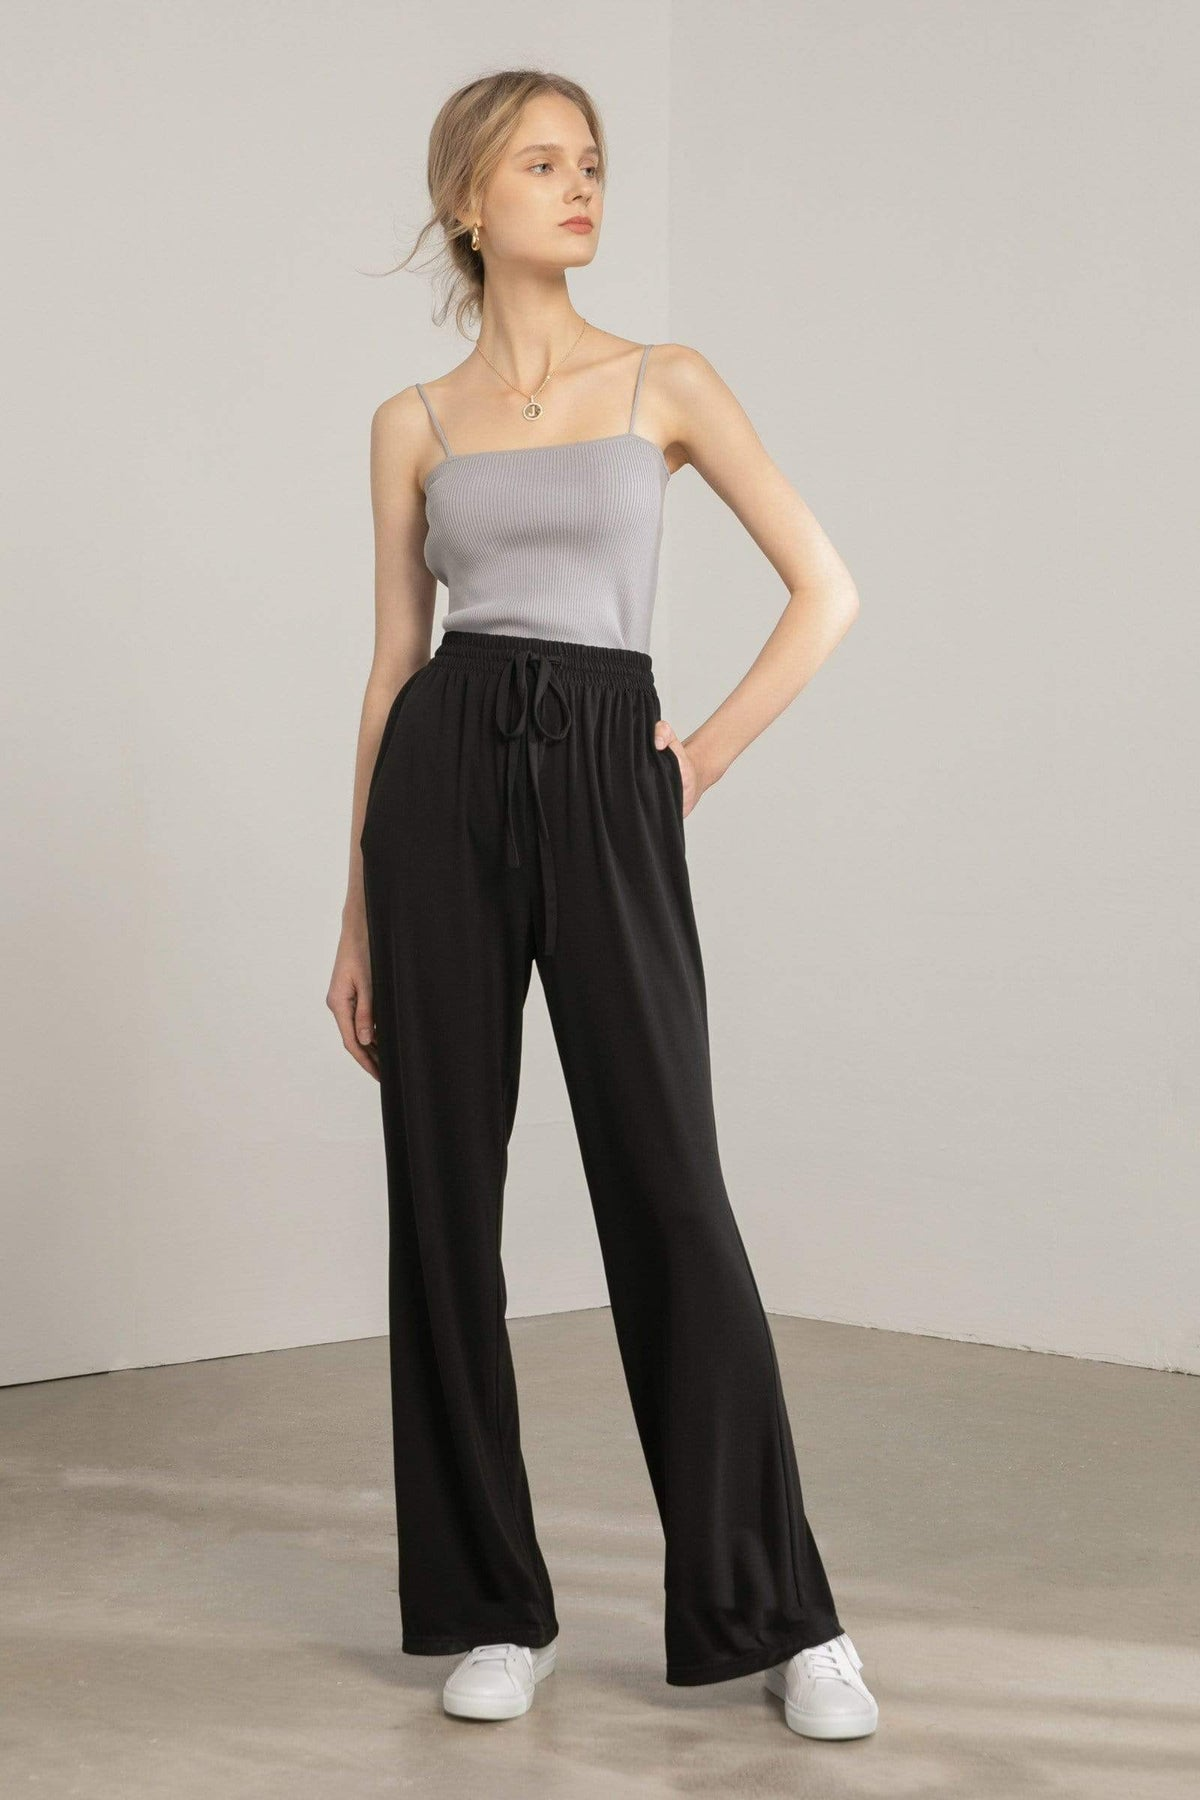 Lounger Black Knit Pants